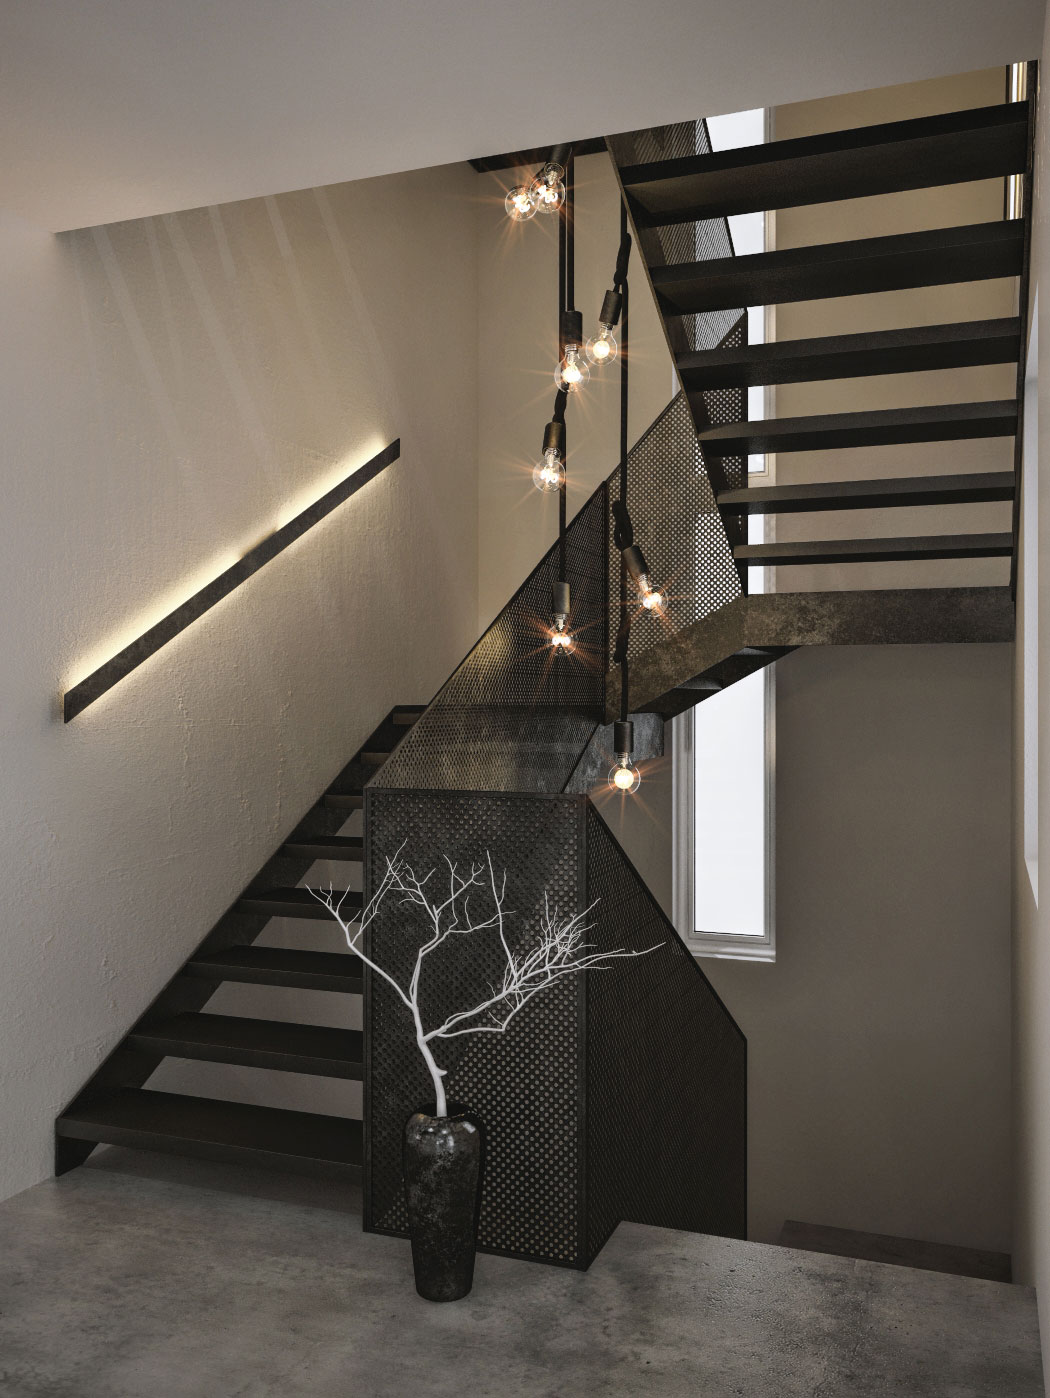 Elegant Edison bulb lighting for the stairway coupled with LED strips